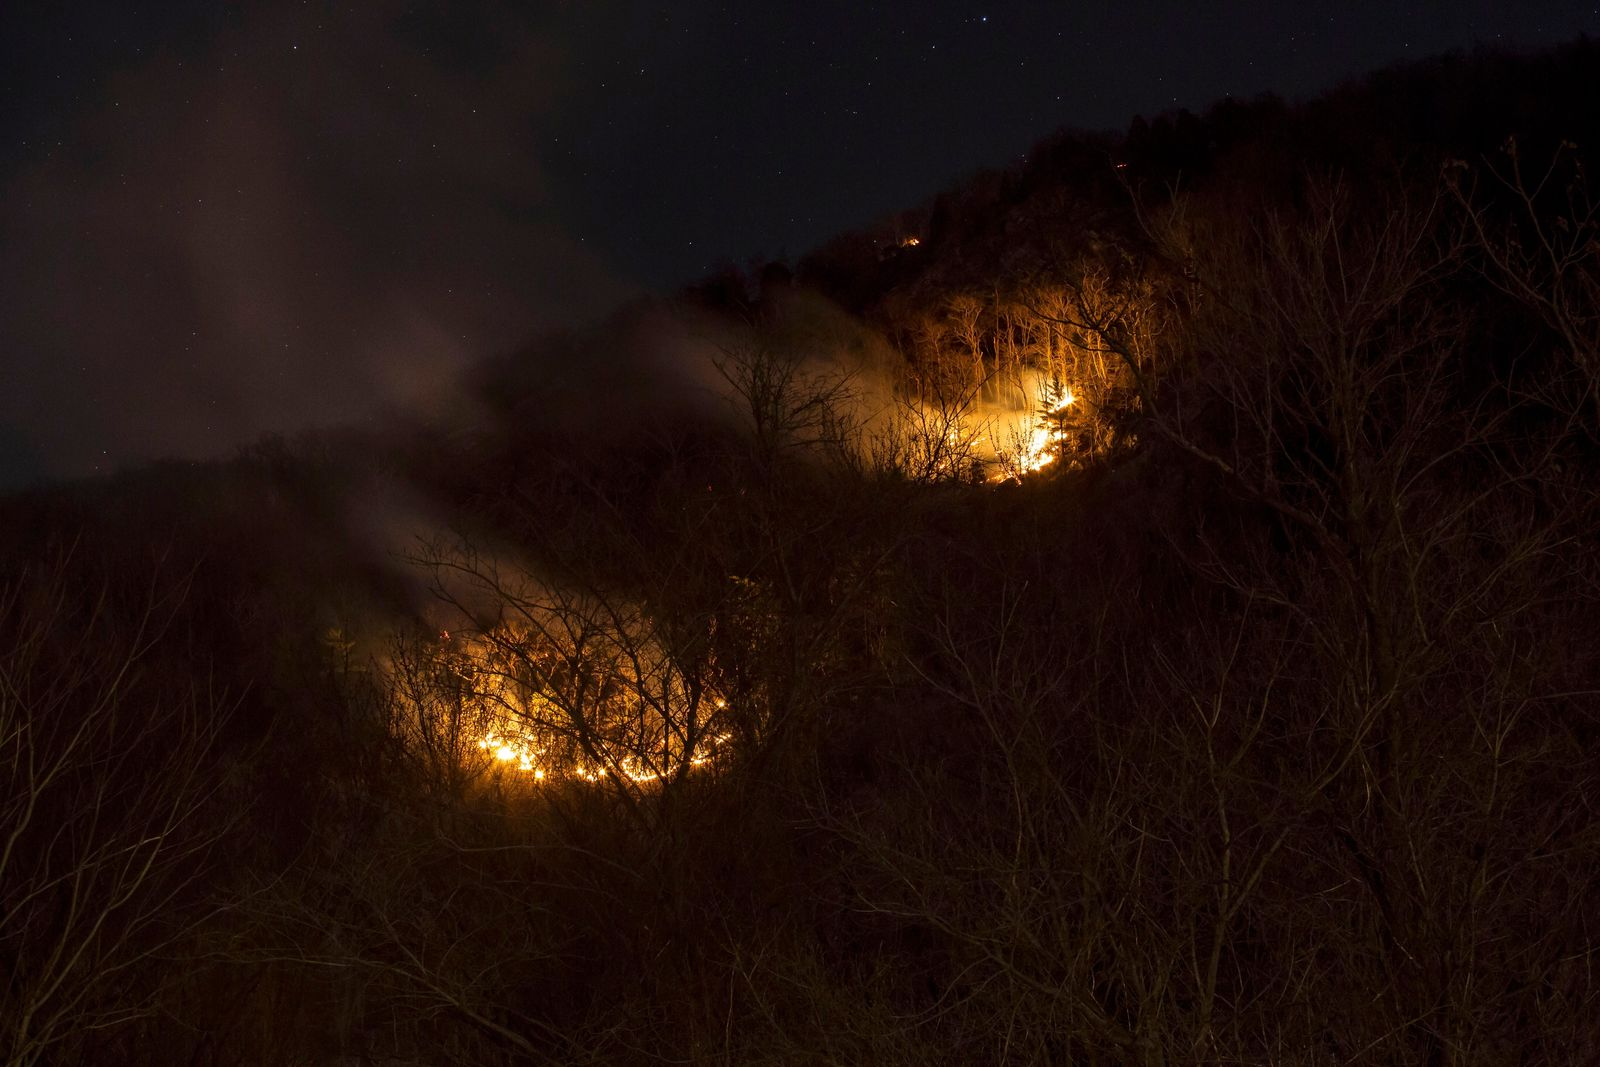 A fire burns on Mount Tammany in the Delaware Water Gap National Recreation Area in Hardwick Township, N.J., Sunday, Feb. 23, 2020.{ } (Daniel Freel/The New Jersey Herald via AP)